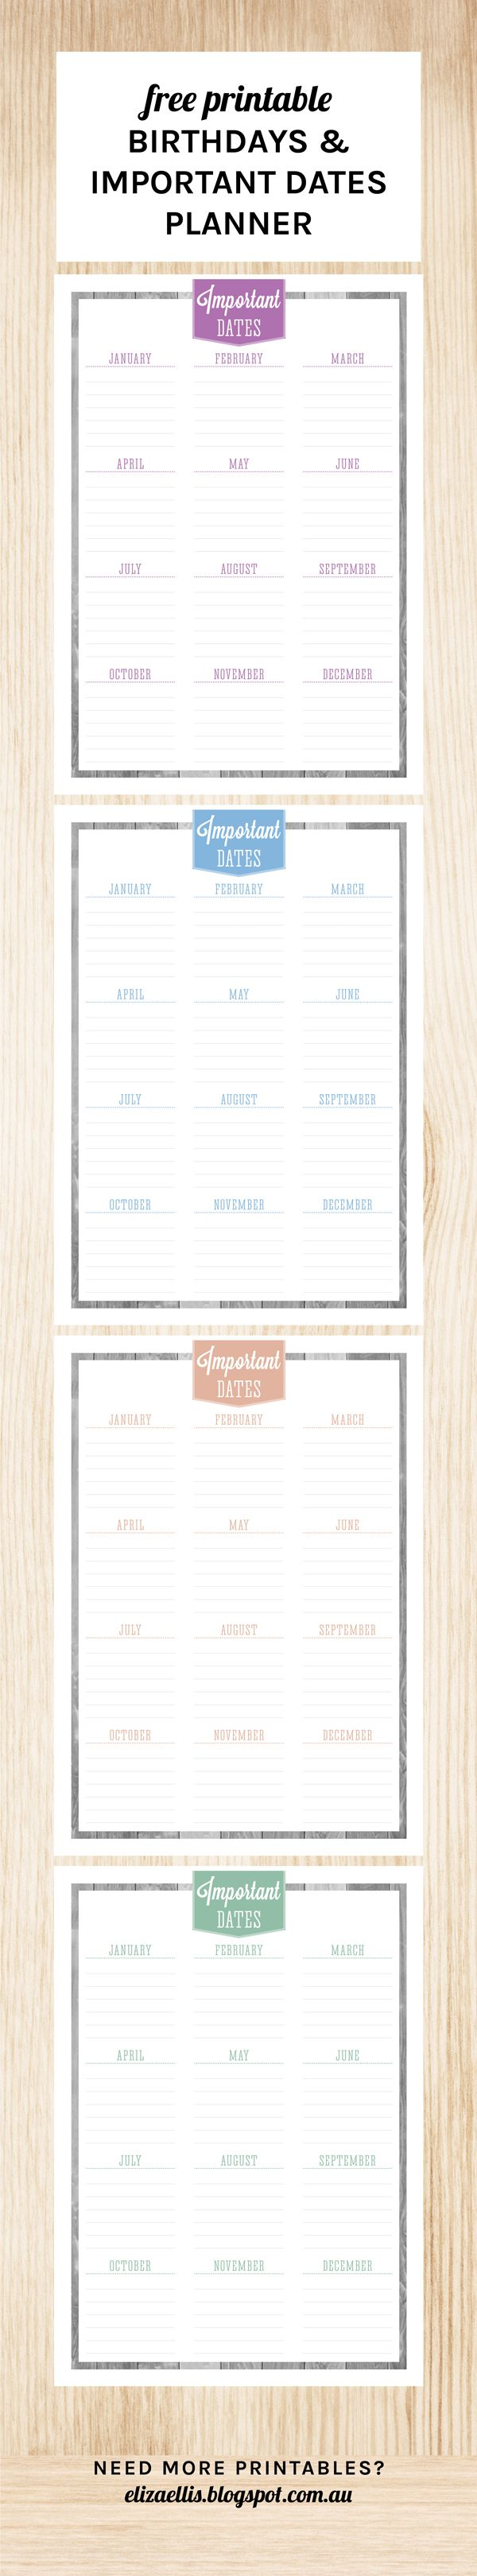 Free Printable Birthdays & Important Dates Planner - With this handy sheet, you can say goodbye to forgetting all those family birthdays! by Eliza Ellis